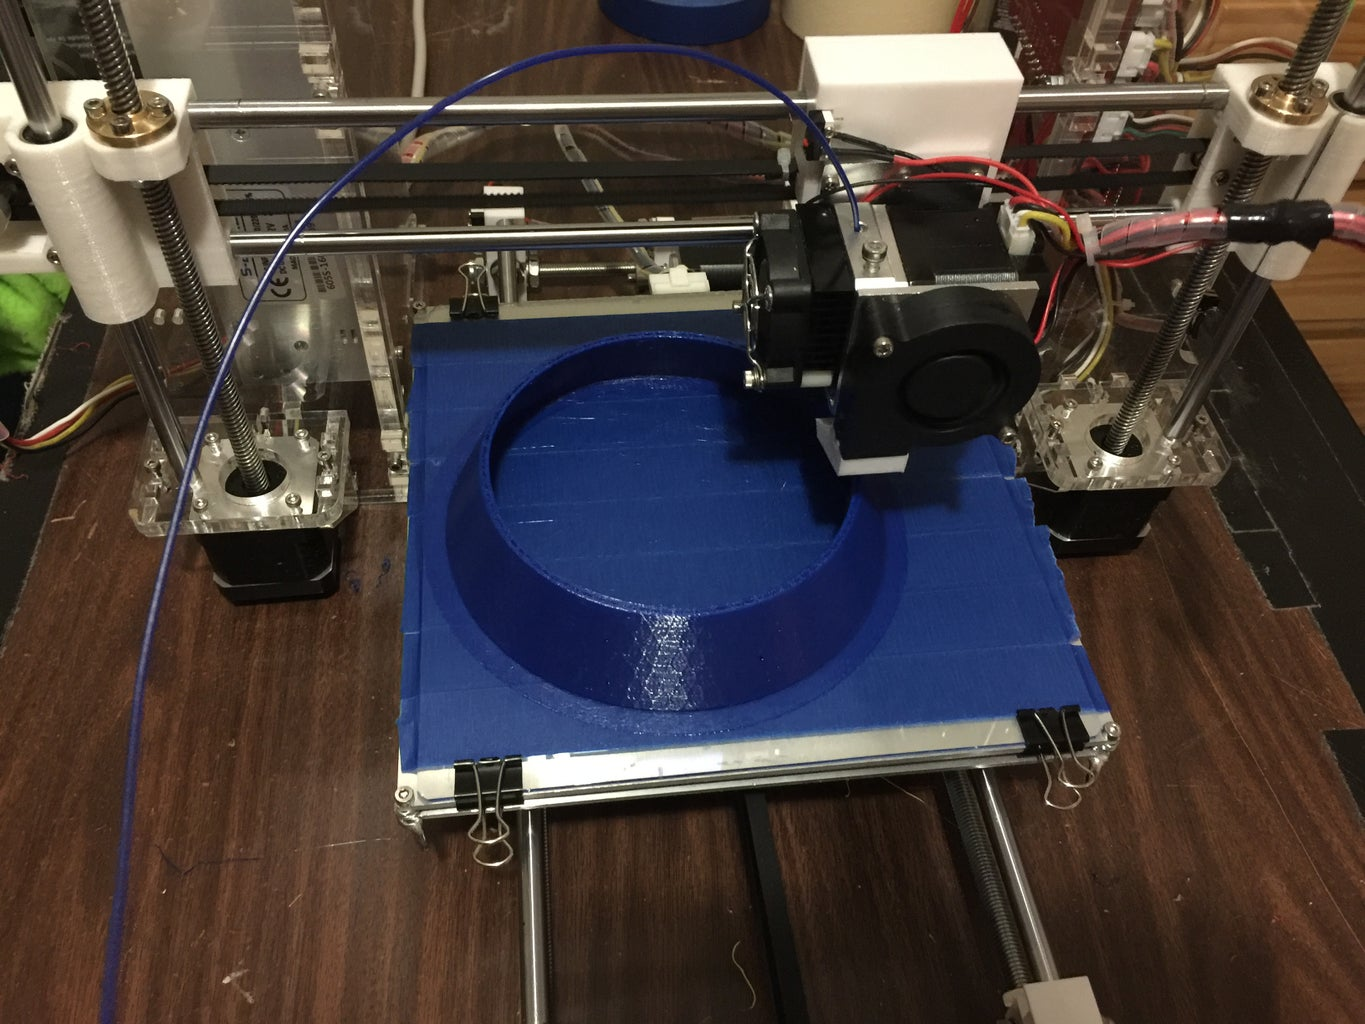 Printing the Funnels